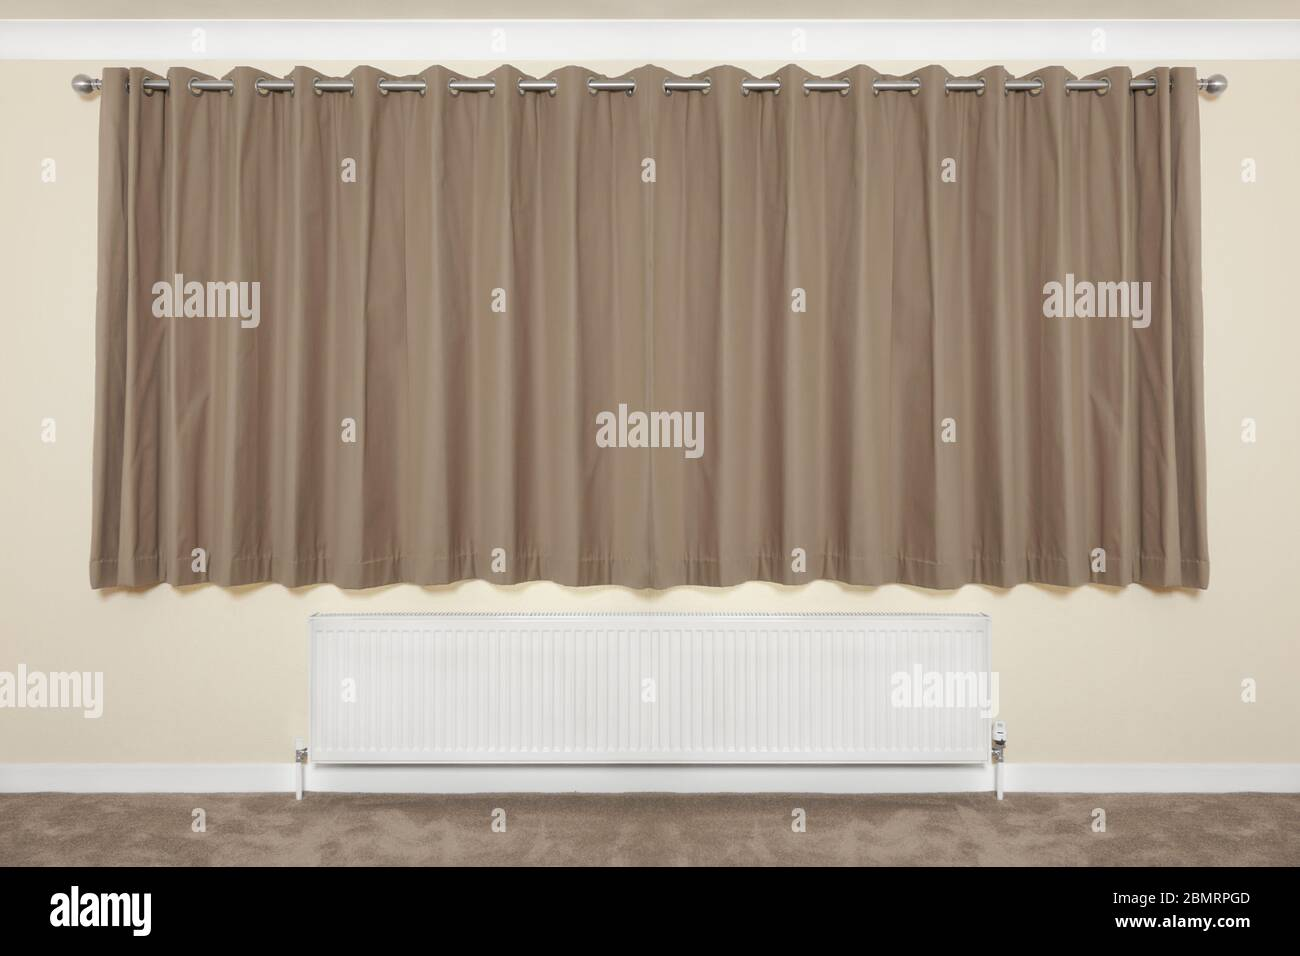 A Pair Of Curtains Hanging Above A Radiator Stock Photo Alamy